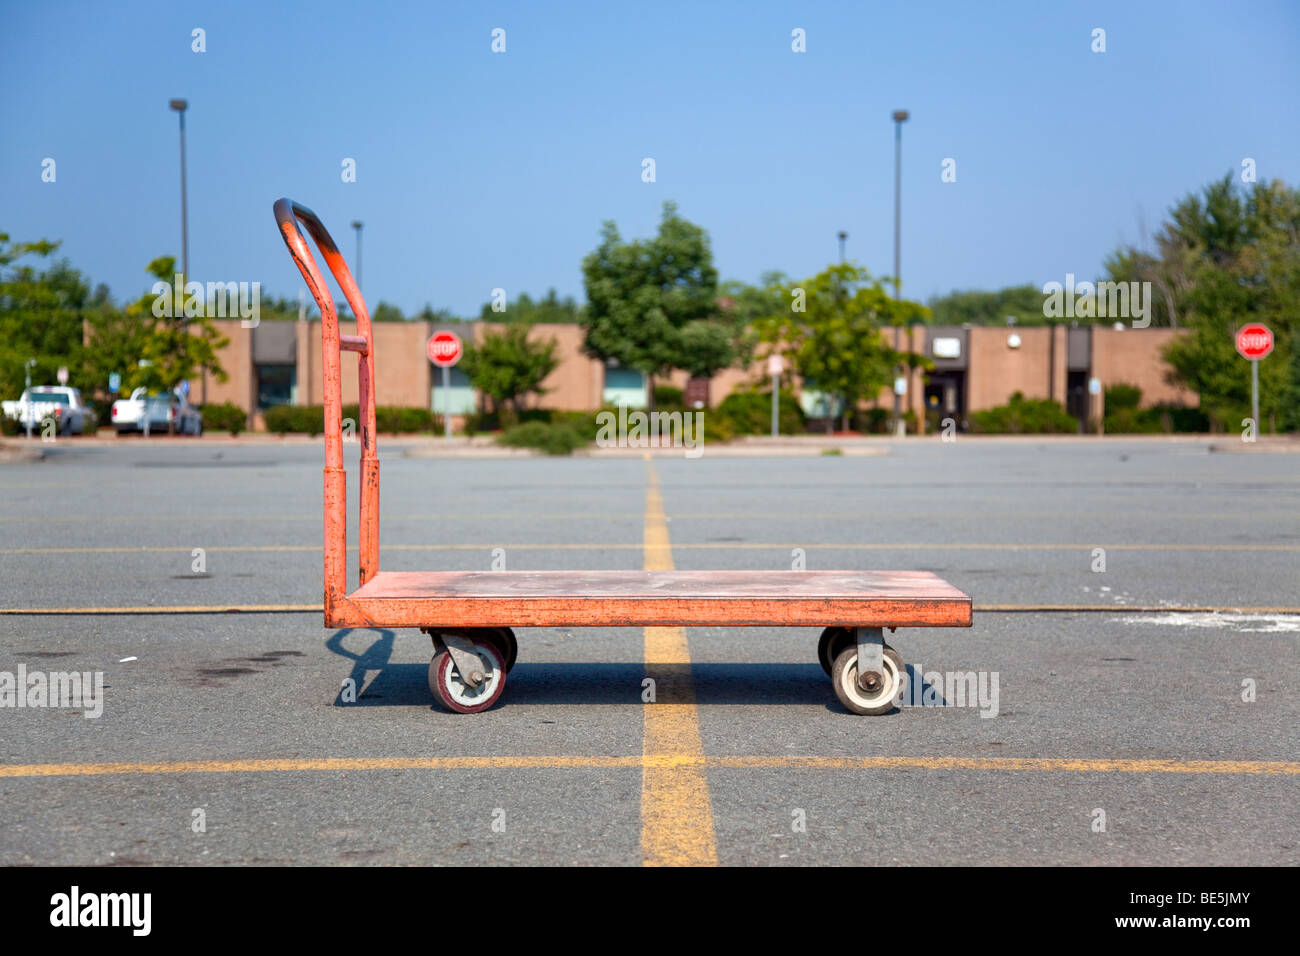 Orange flat bed cart at a store's parking lot with stop signs and building visible in the background - Stock Image